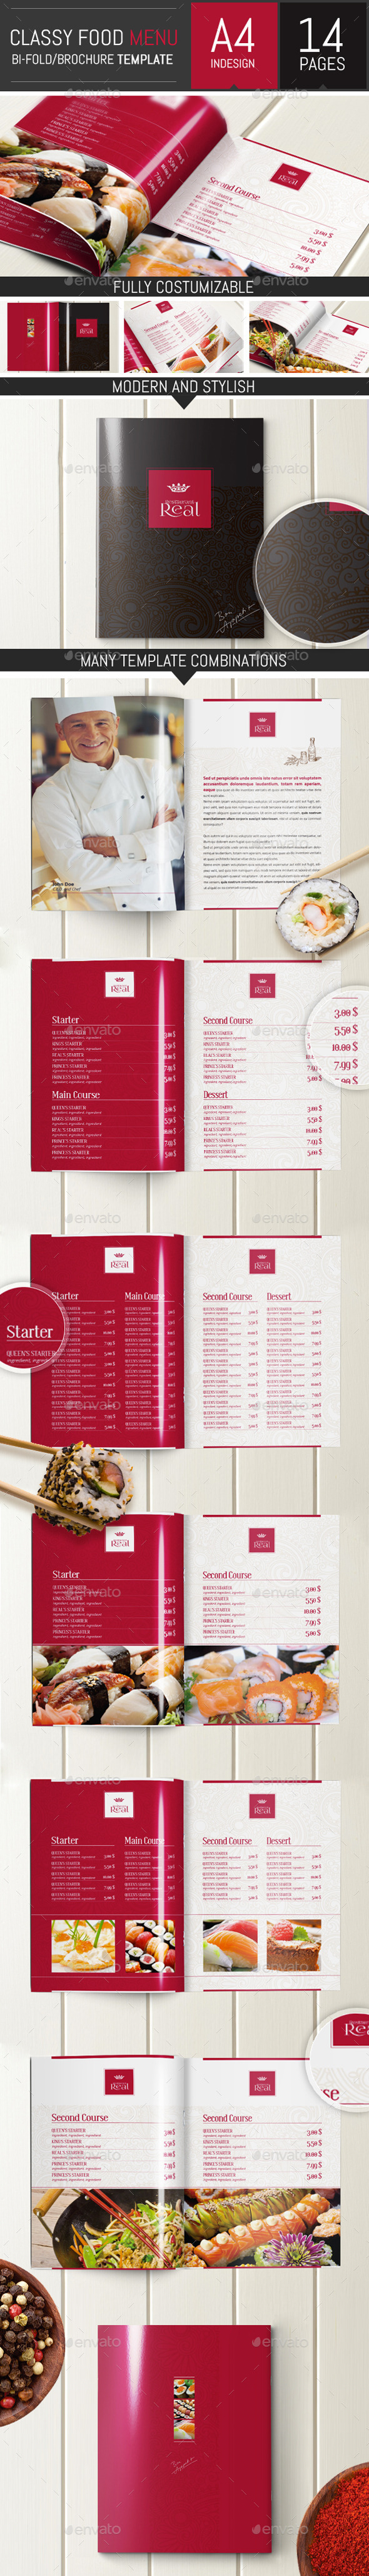 Classy Food Menu Brochure Template - Food Menus Print Templates